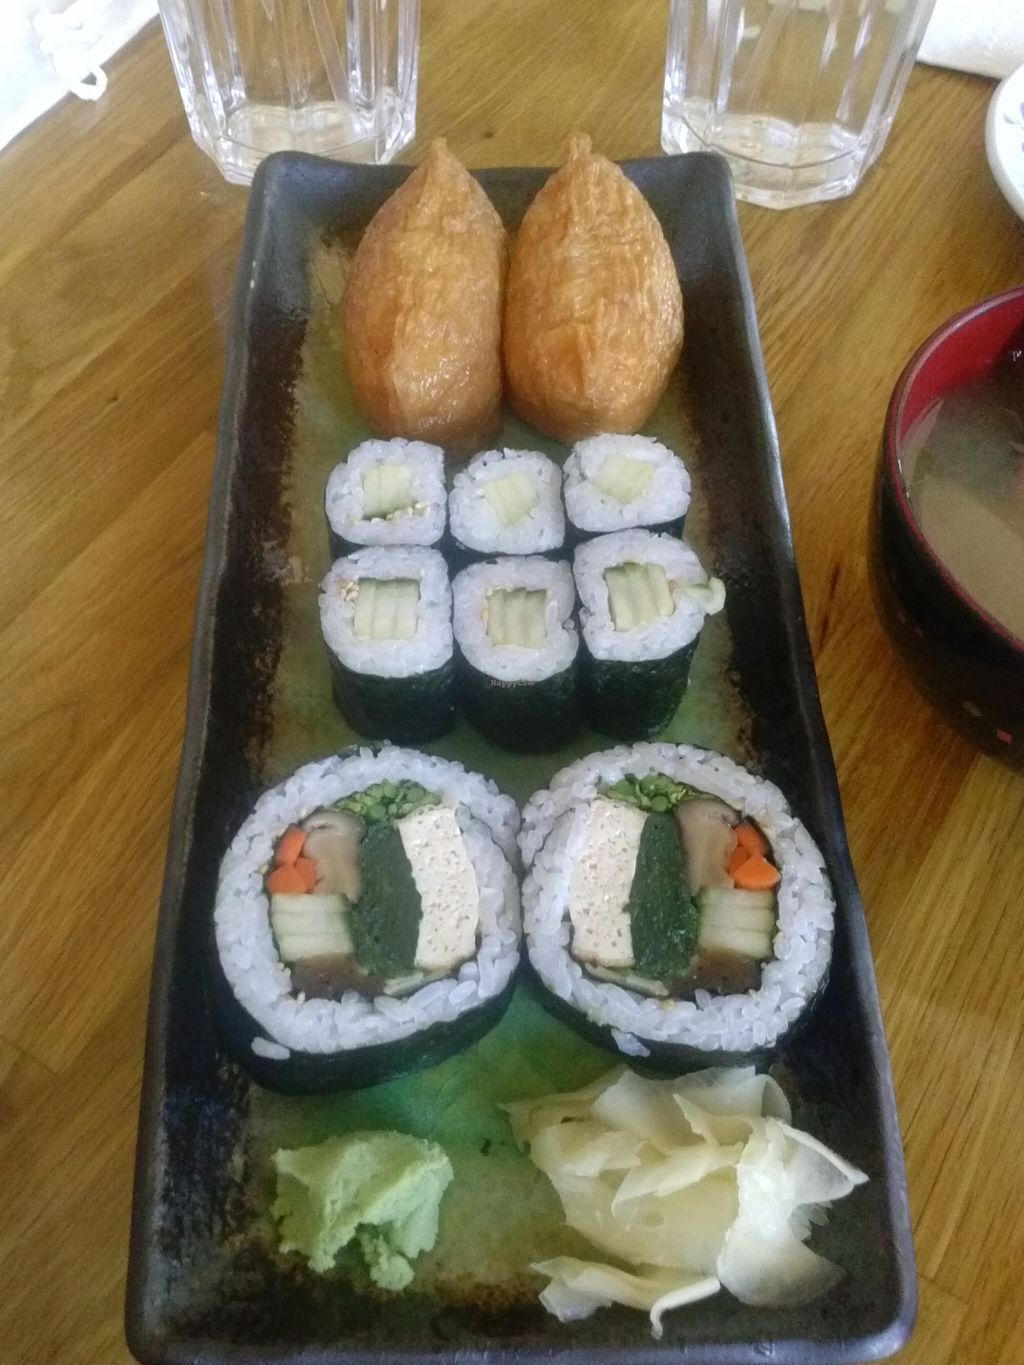 """Photo of Cha-Ya  by <a href=""""/members/profile/Sonja%20and%20Dirk"""">Sonja and Dirk</a> <br/>sushi lunch combo <br/> September 20, 2015  - <a href='/contact/abuse/image/1481/118543'>Report</a>"""